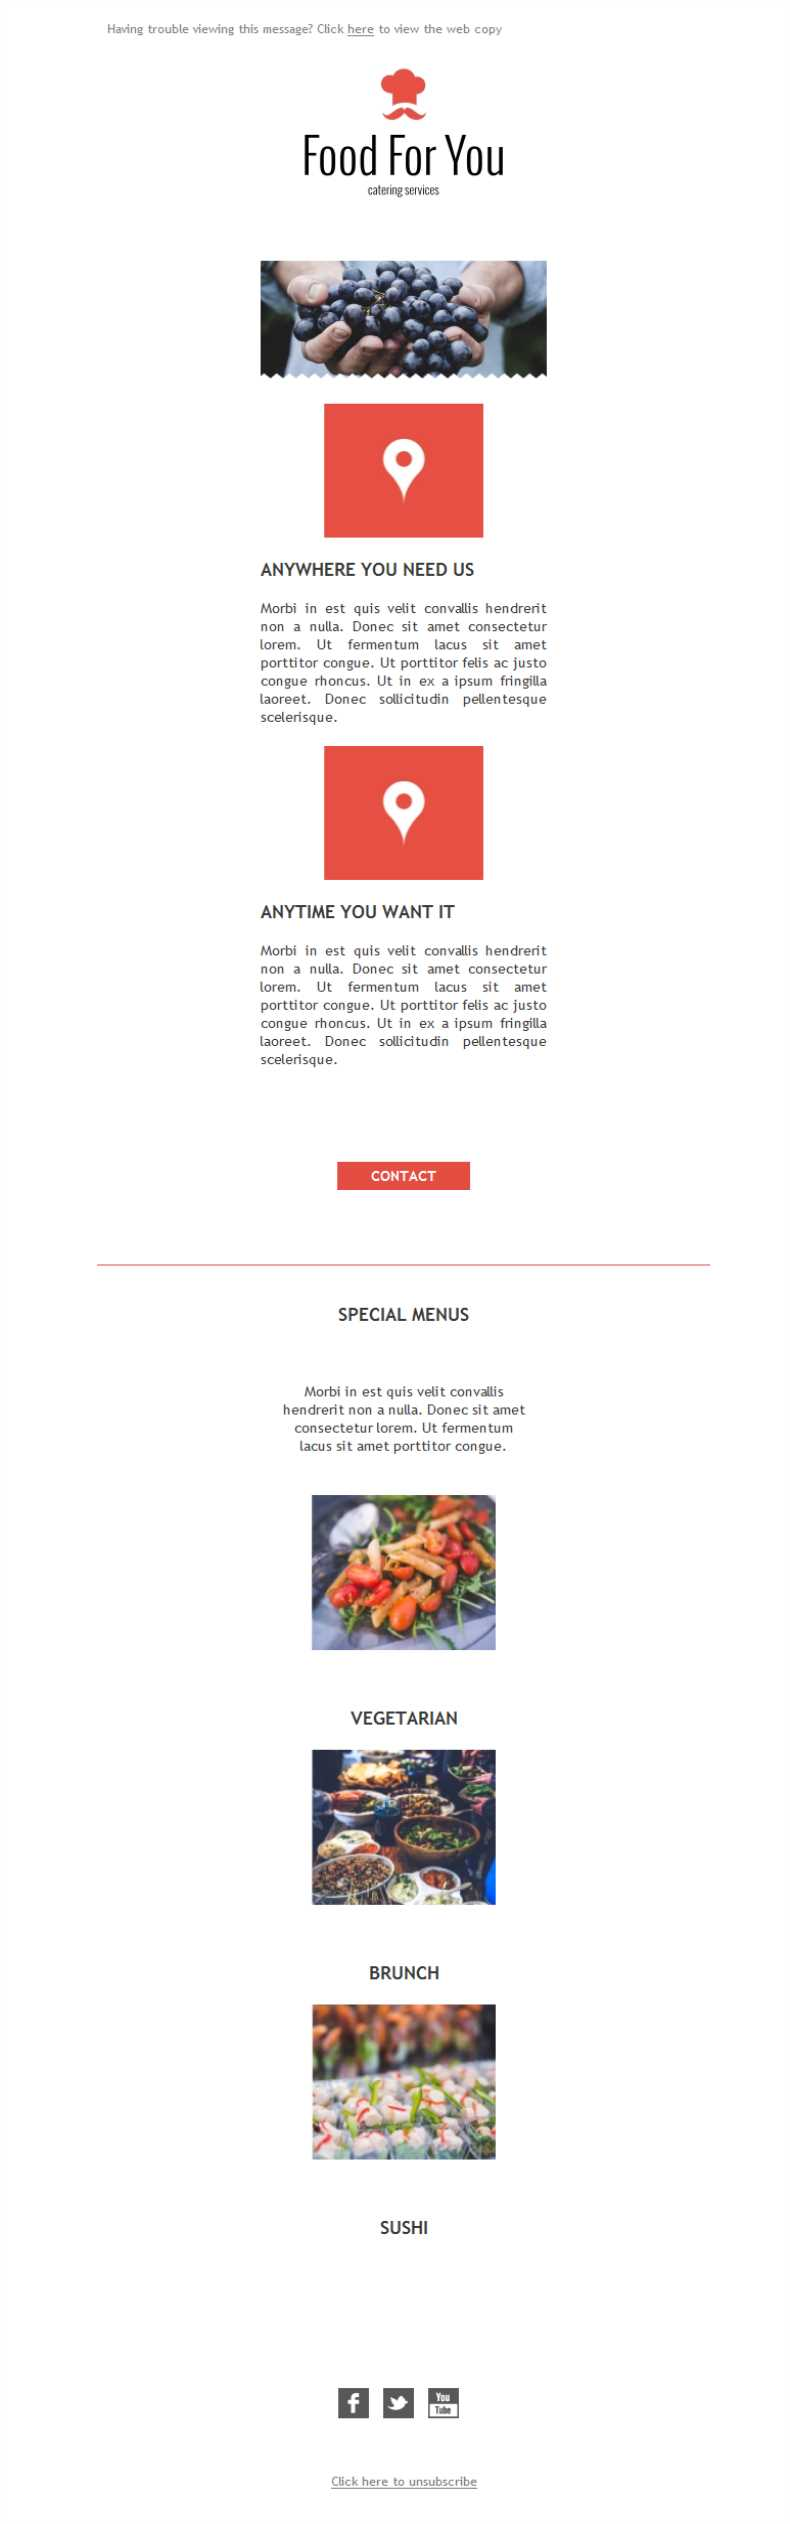 Free email templates download design catering for you for Catering email template